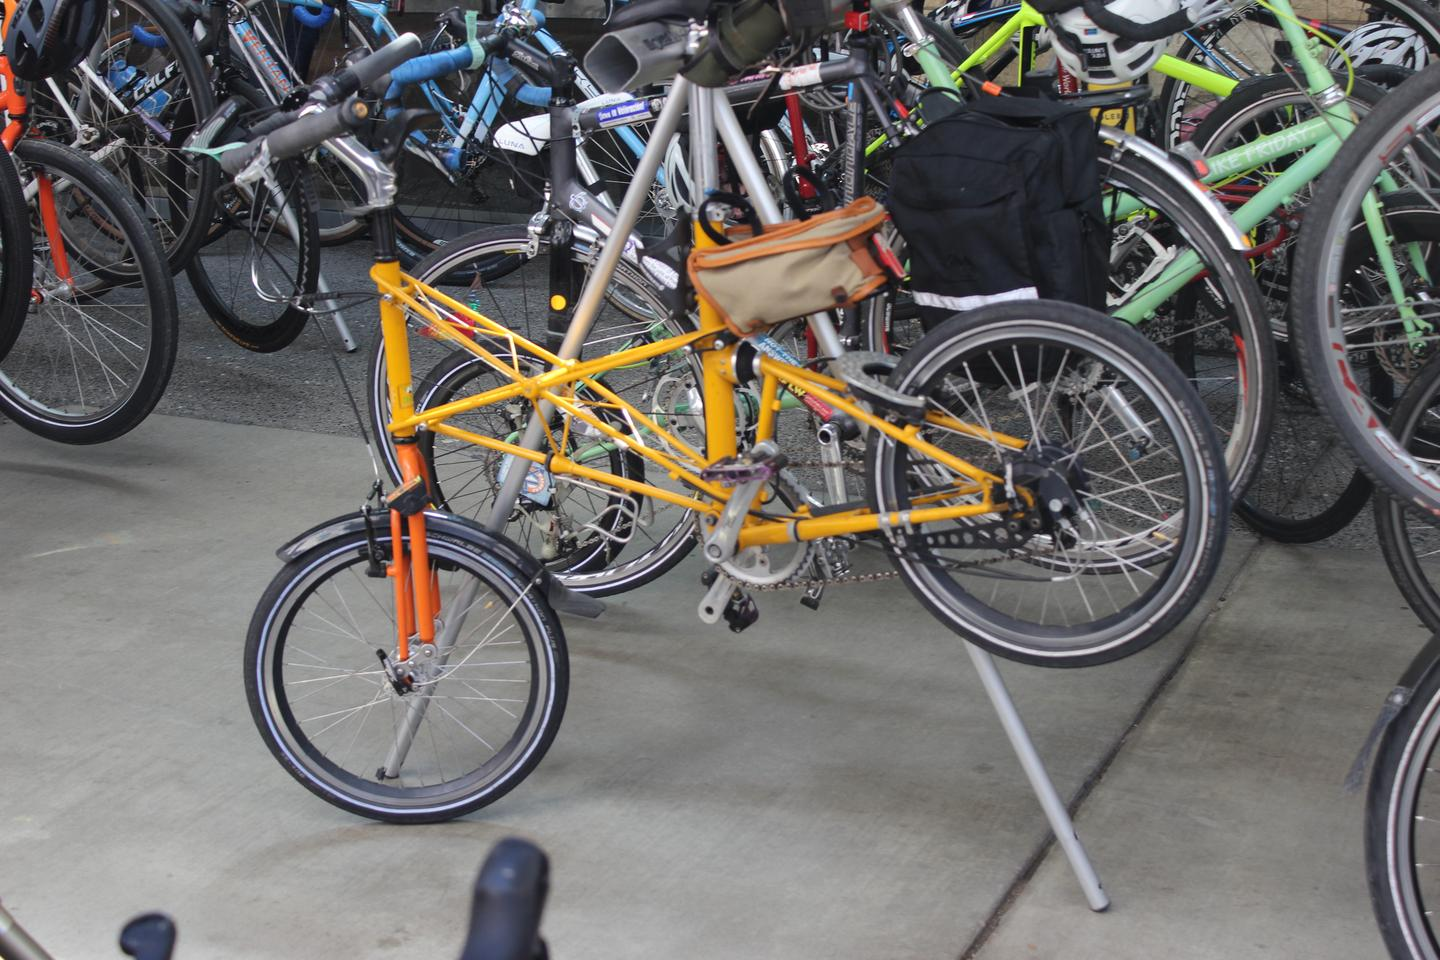 The fun starts even before you get inside at NAHBS – it's always worth checking out the parking area for interesting bikes